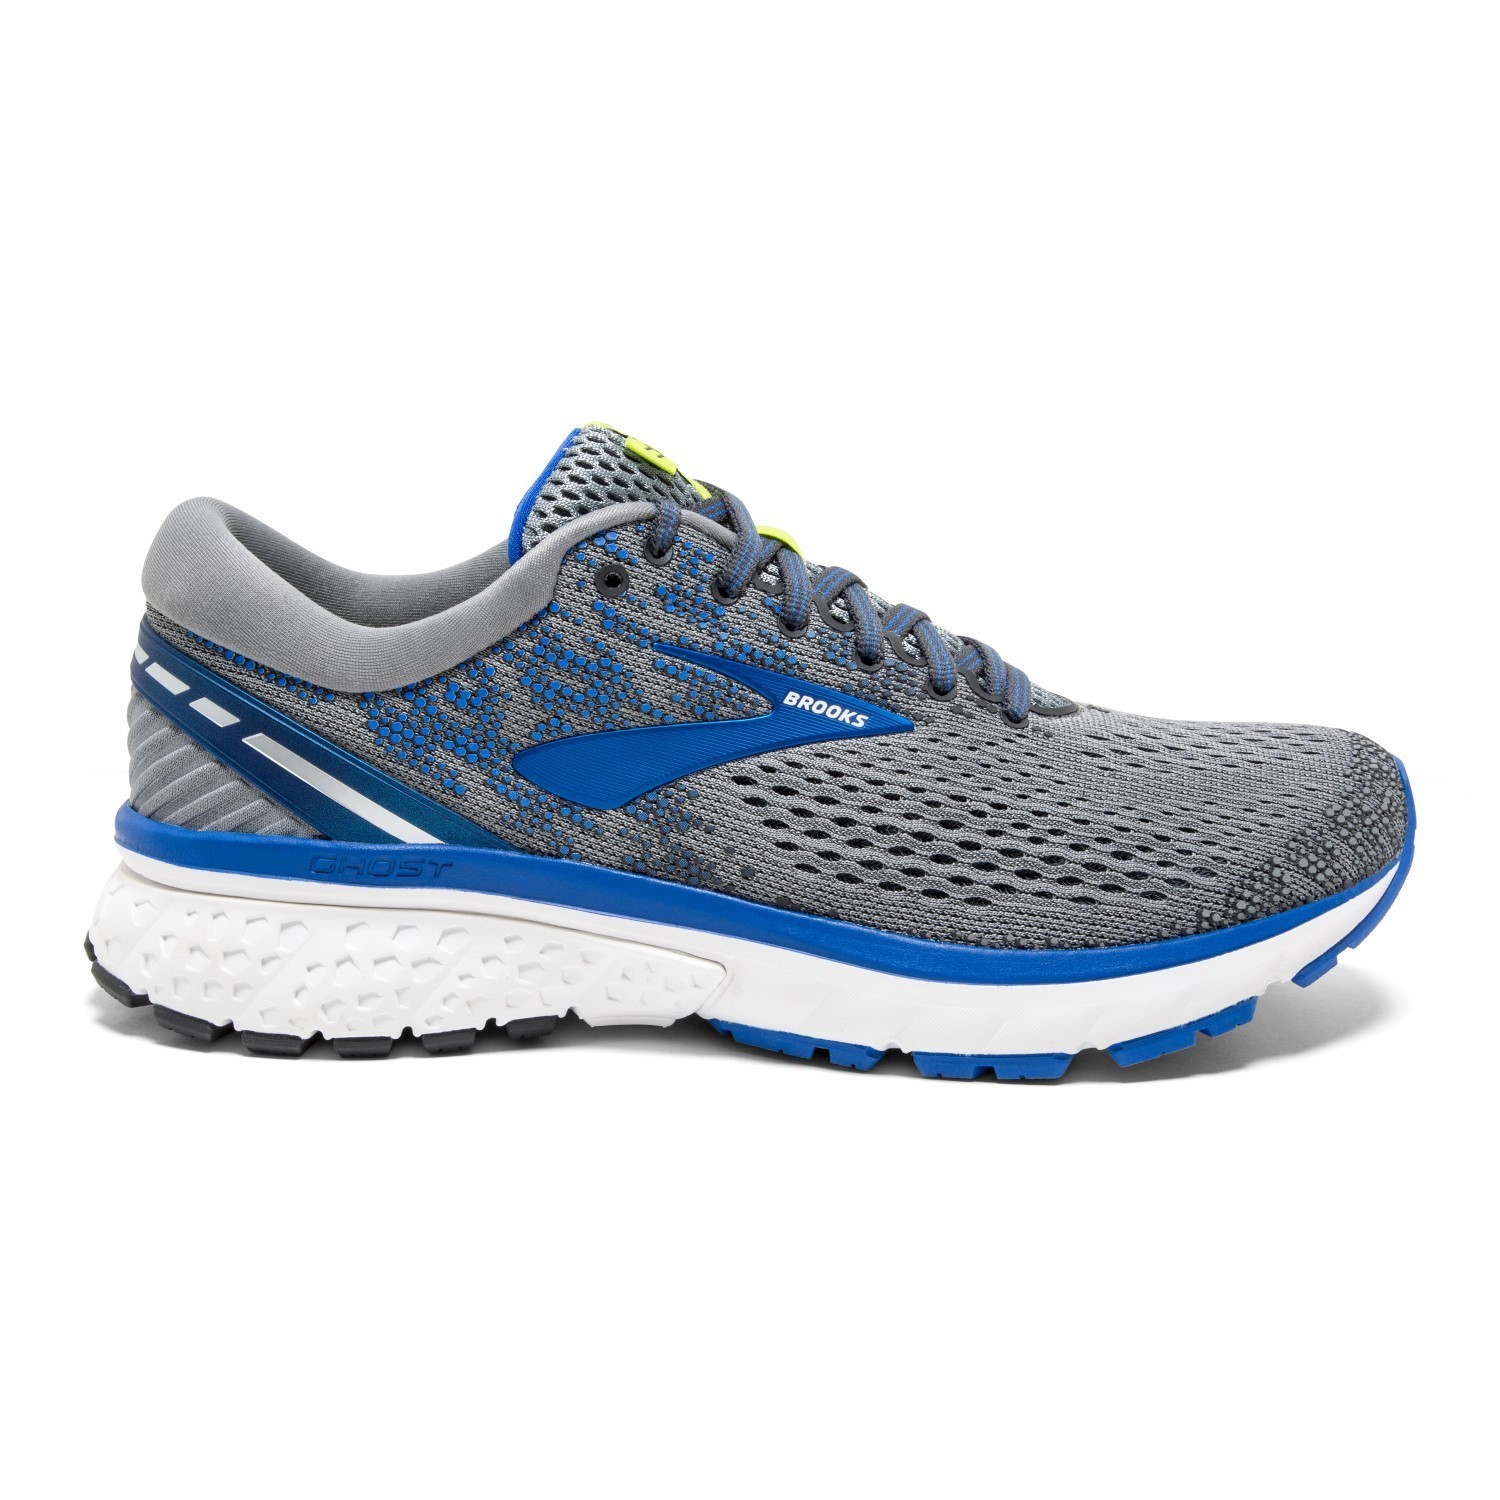 2ddf29127dc4c Brooks Ghost 11 - Mens Running Shoes - Grey Blue Silver